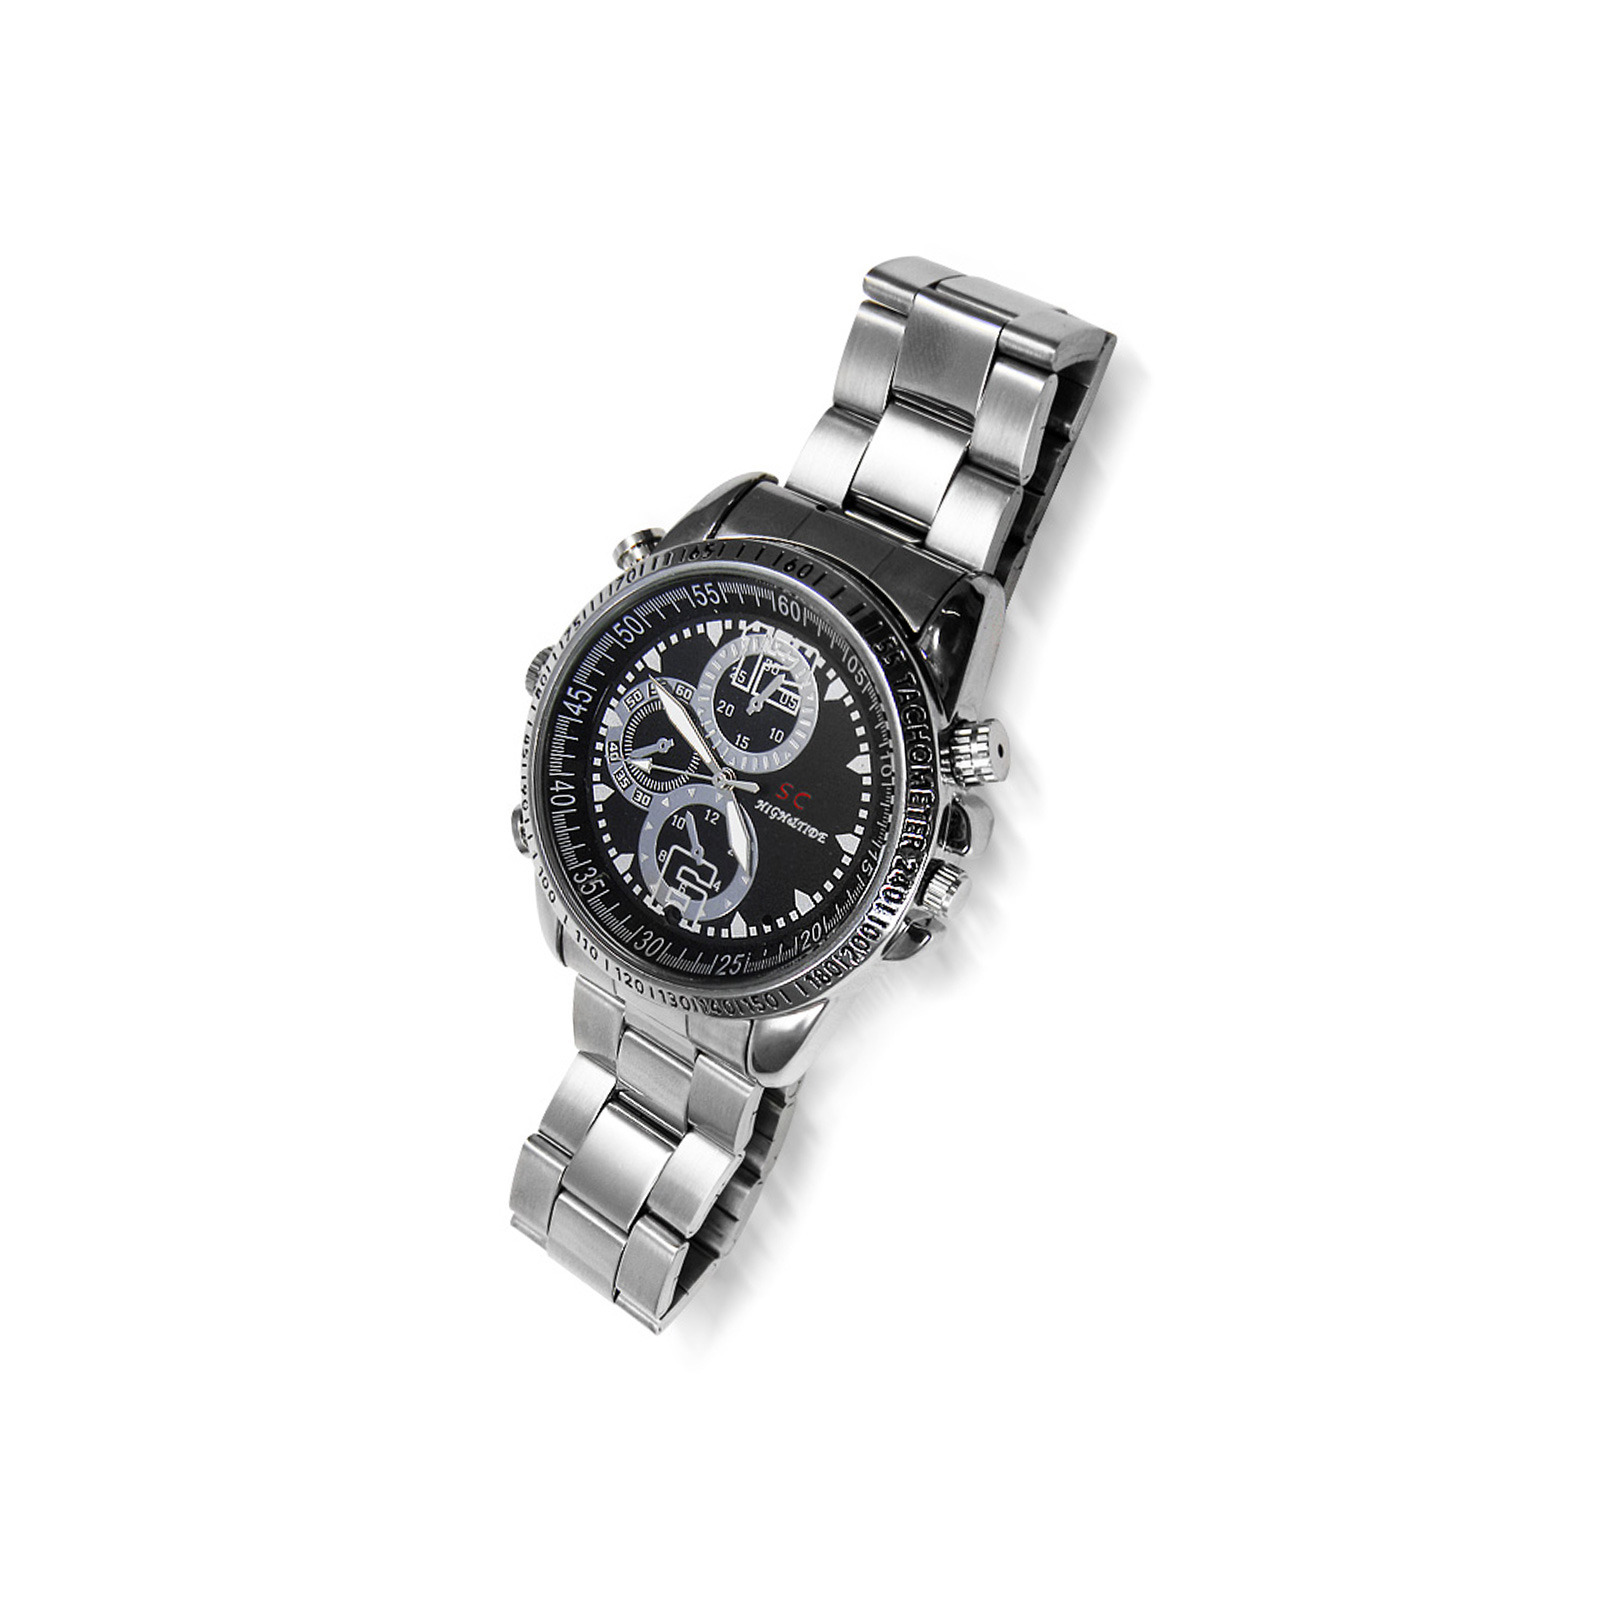 Wristwatch with an integrated camera / Spy Watch -